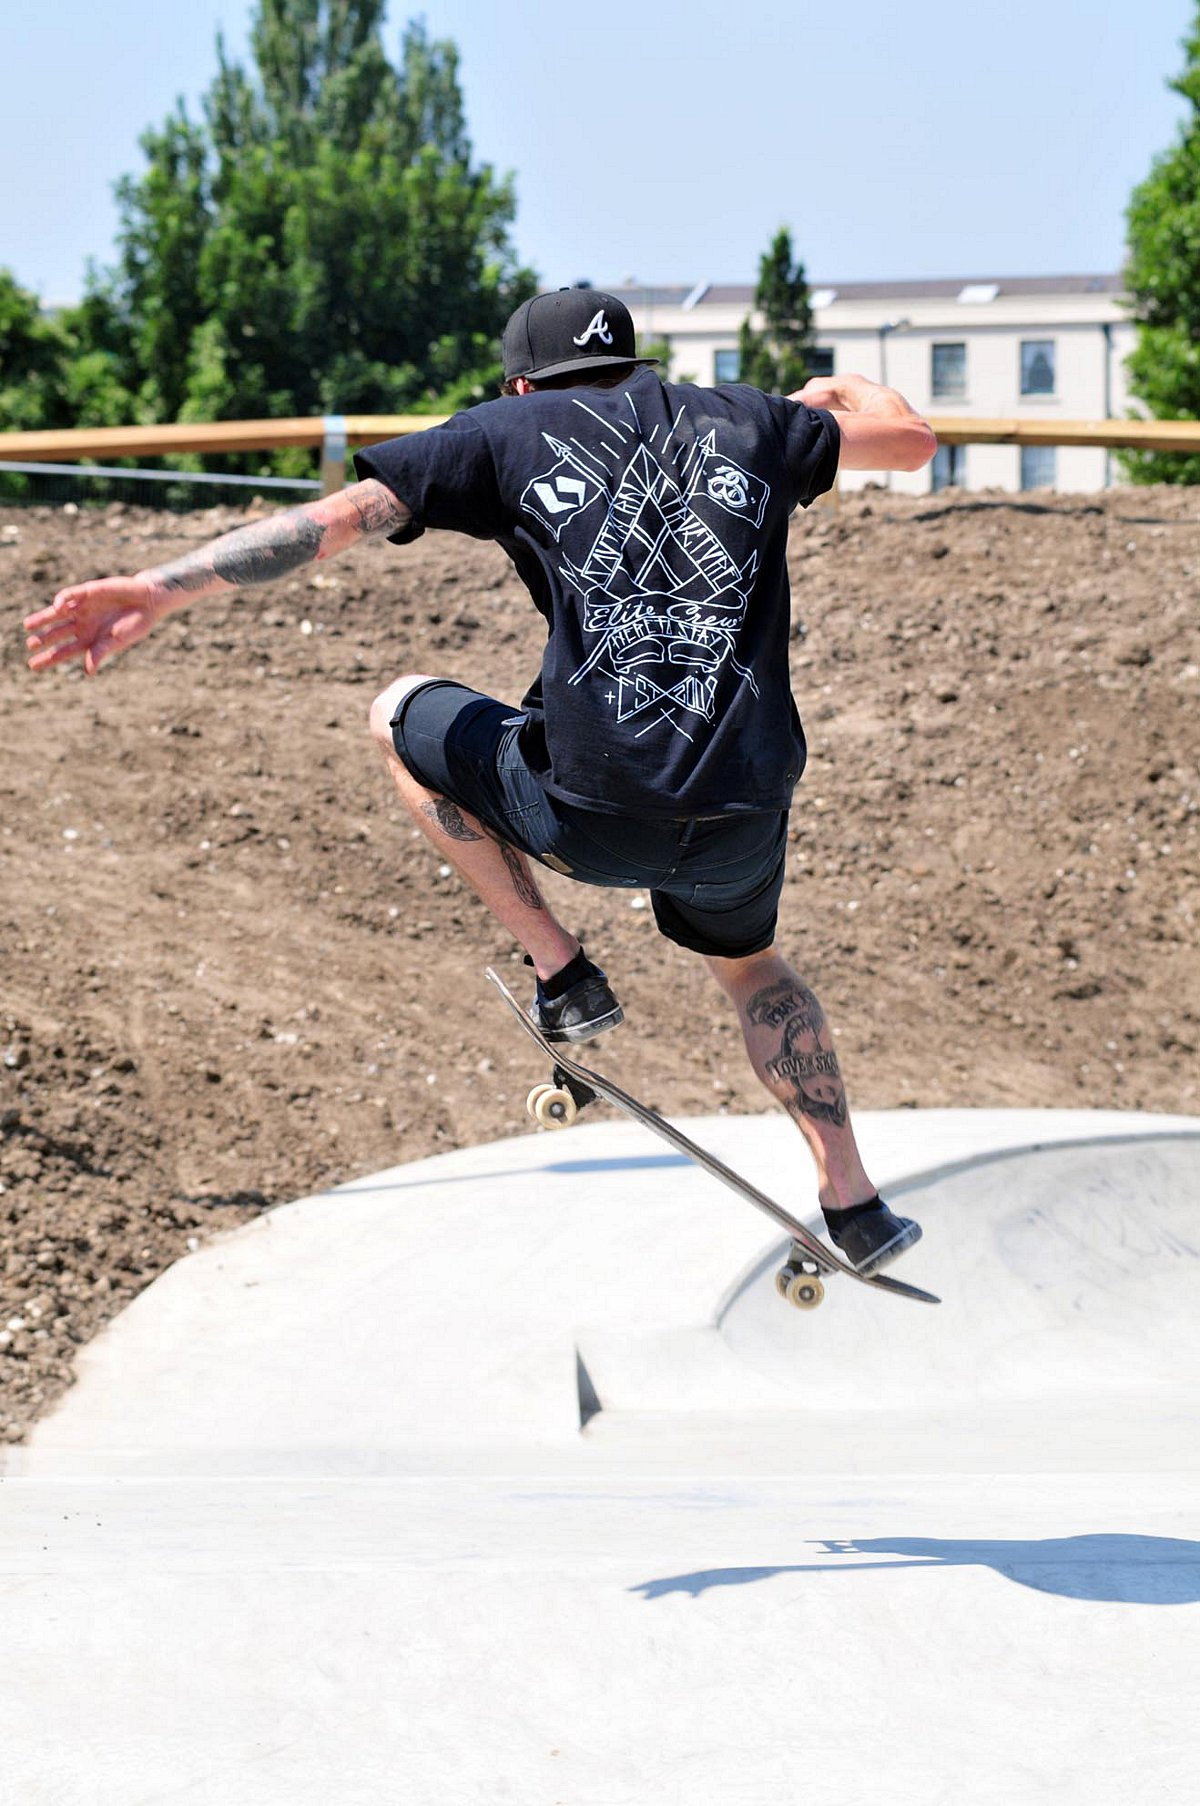 Cox Lane and Long Grove skate parks will be launching with professional demonstrations